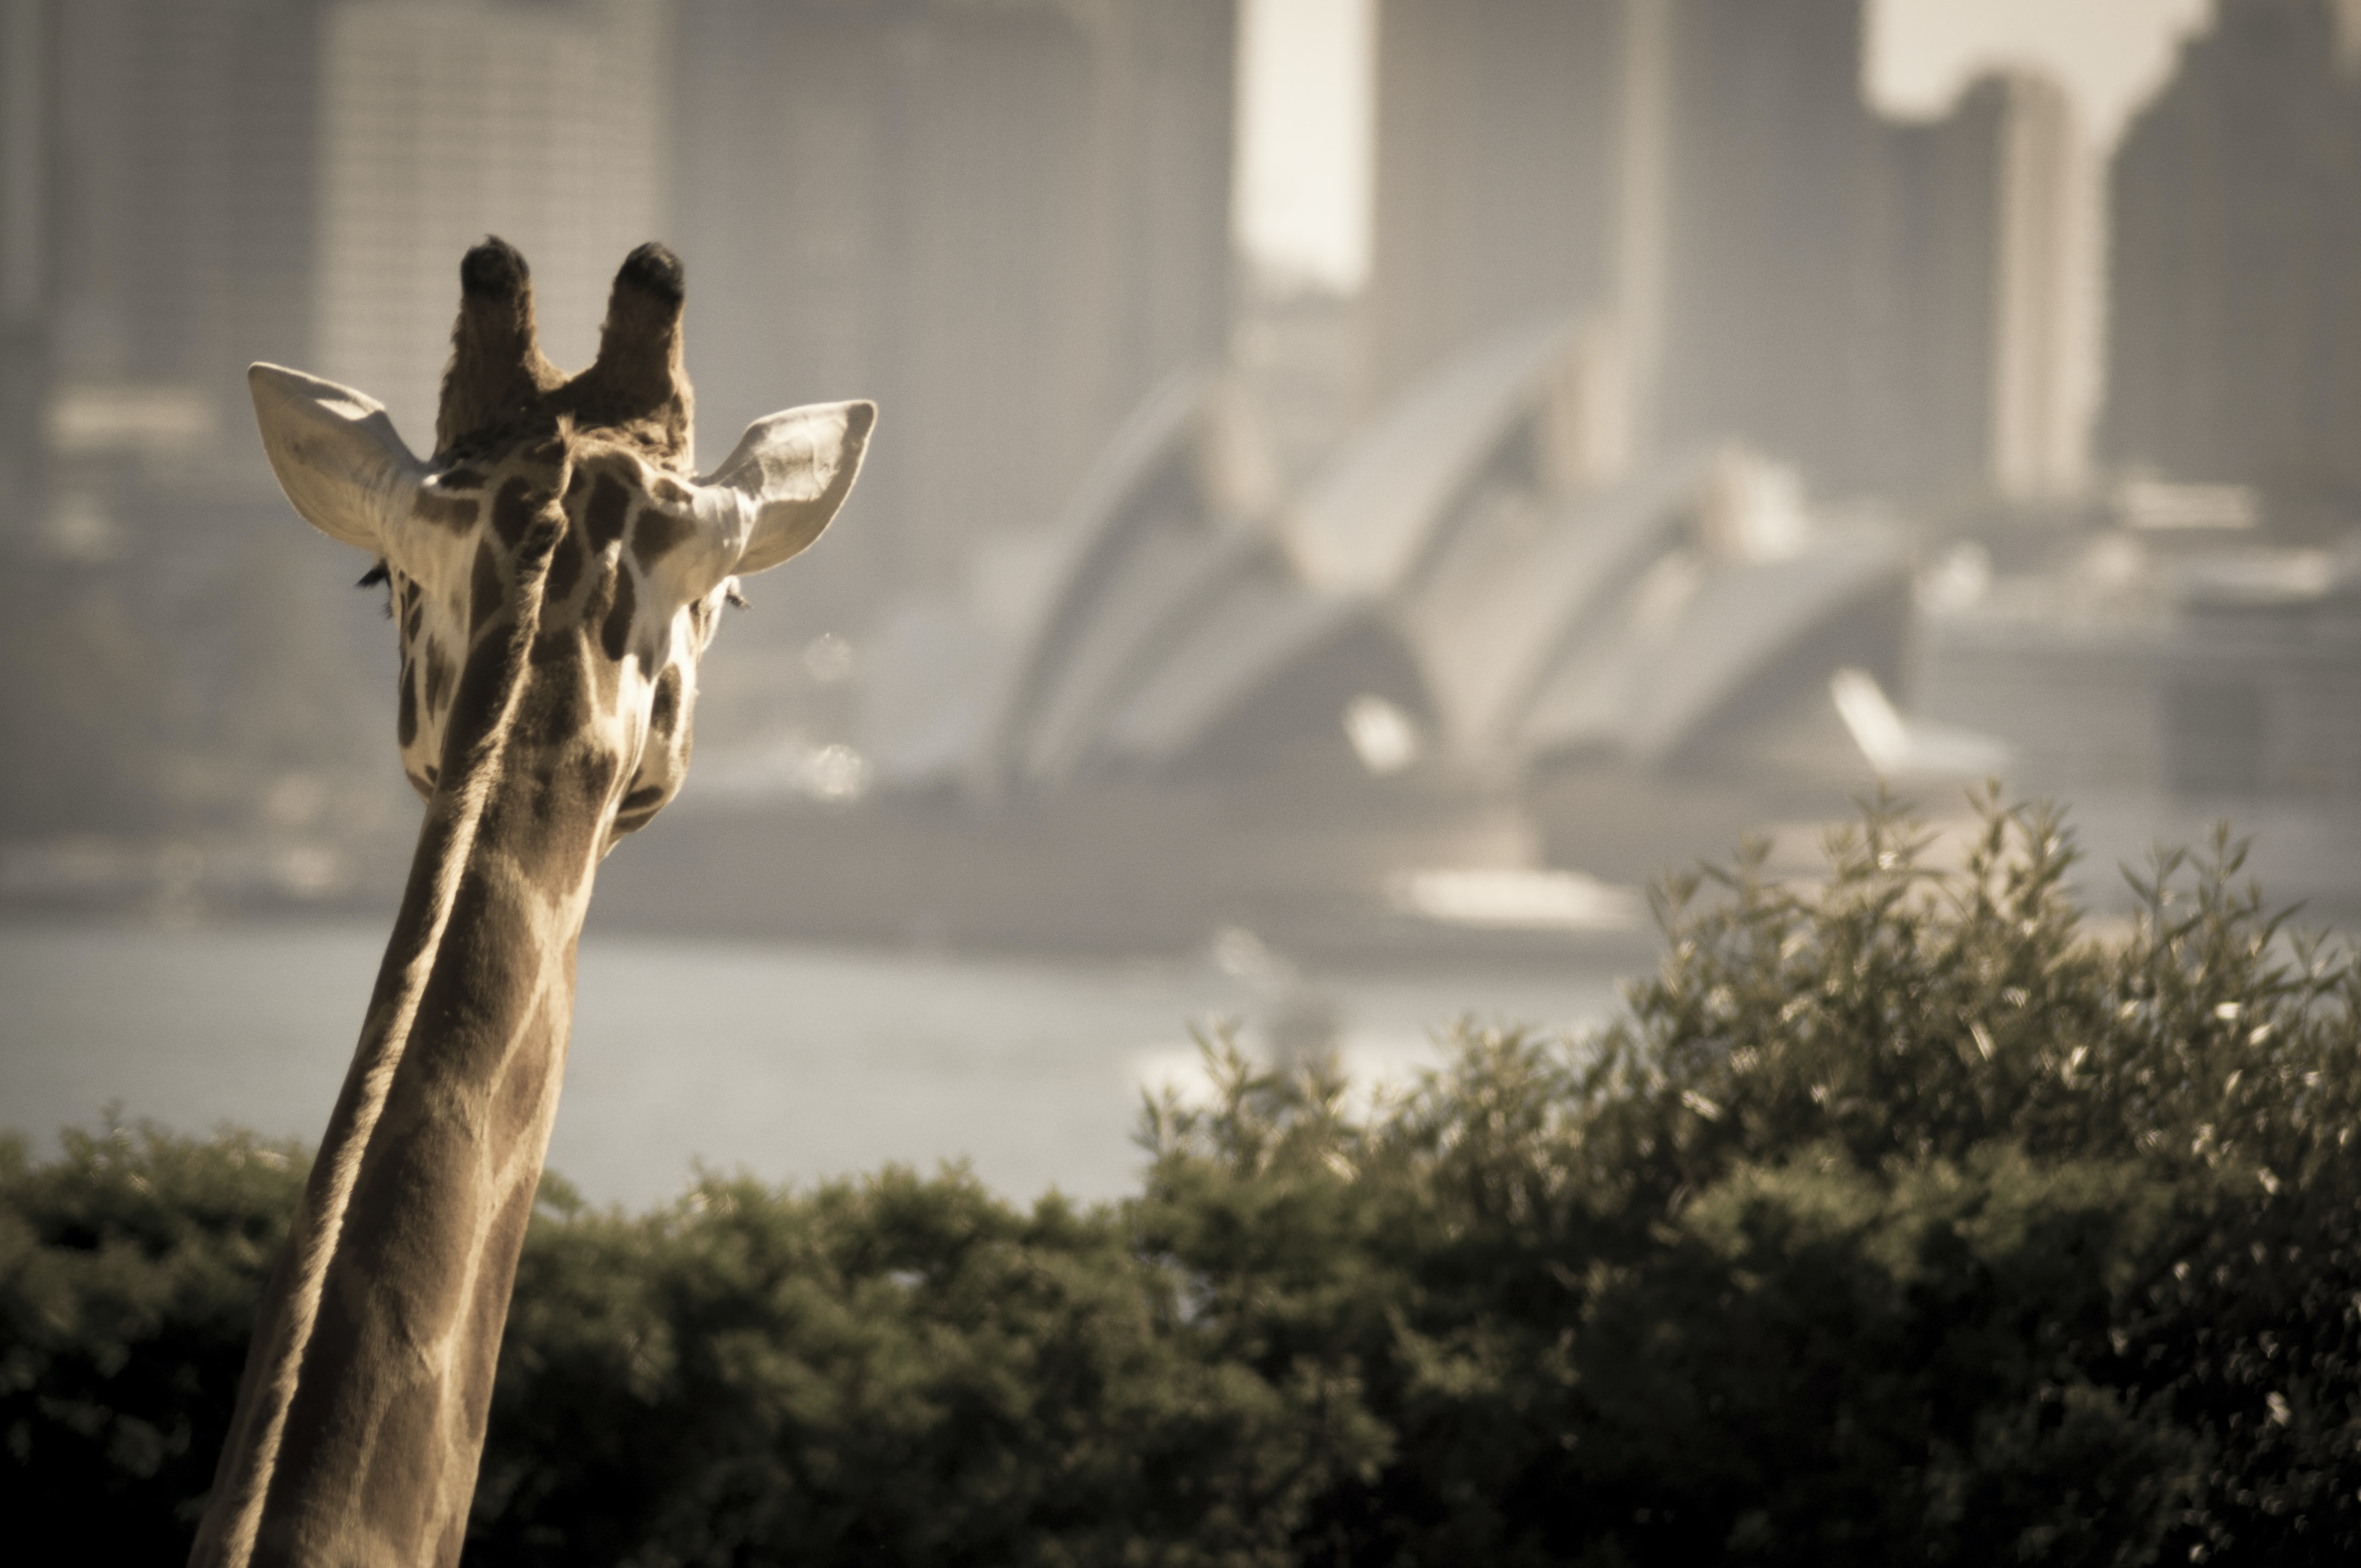 giraffe looking on opera house during daytime